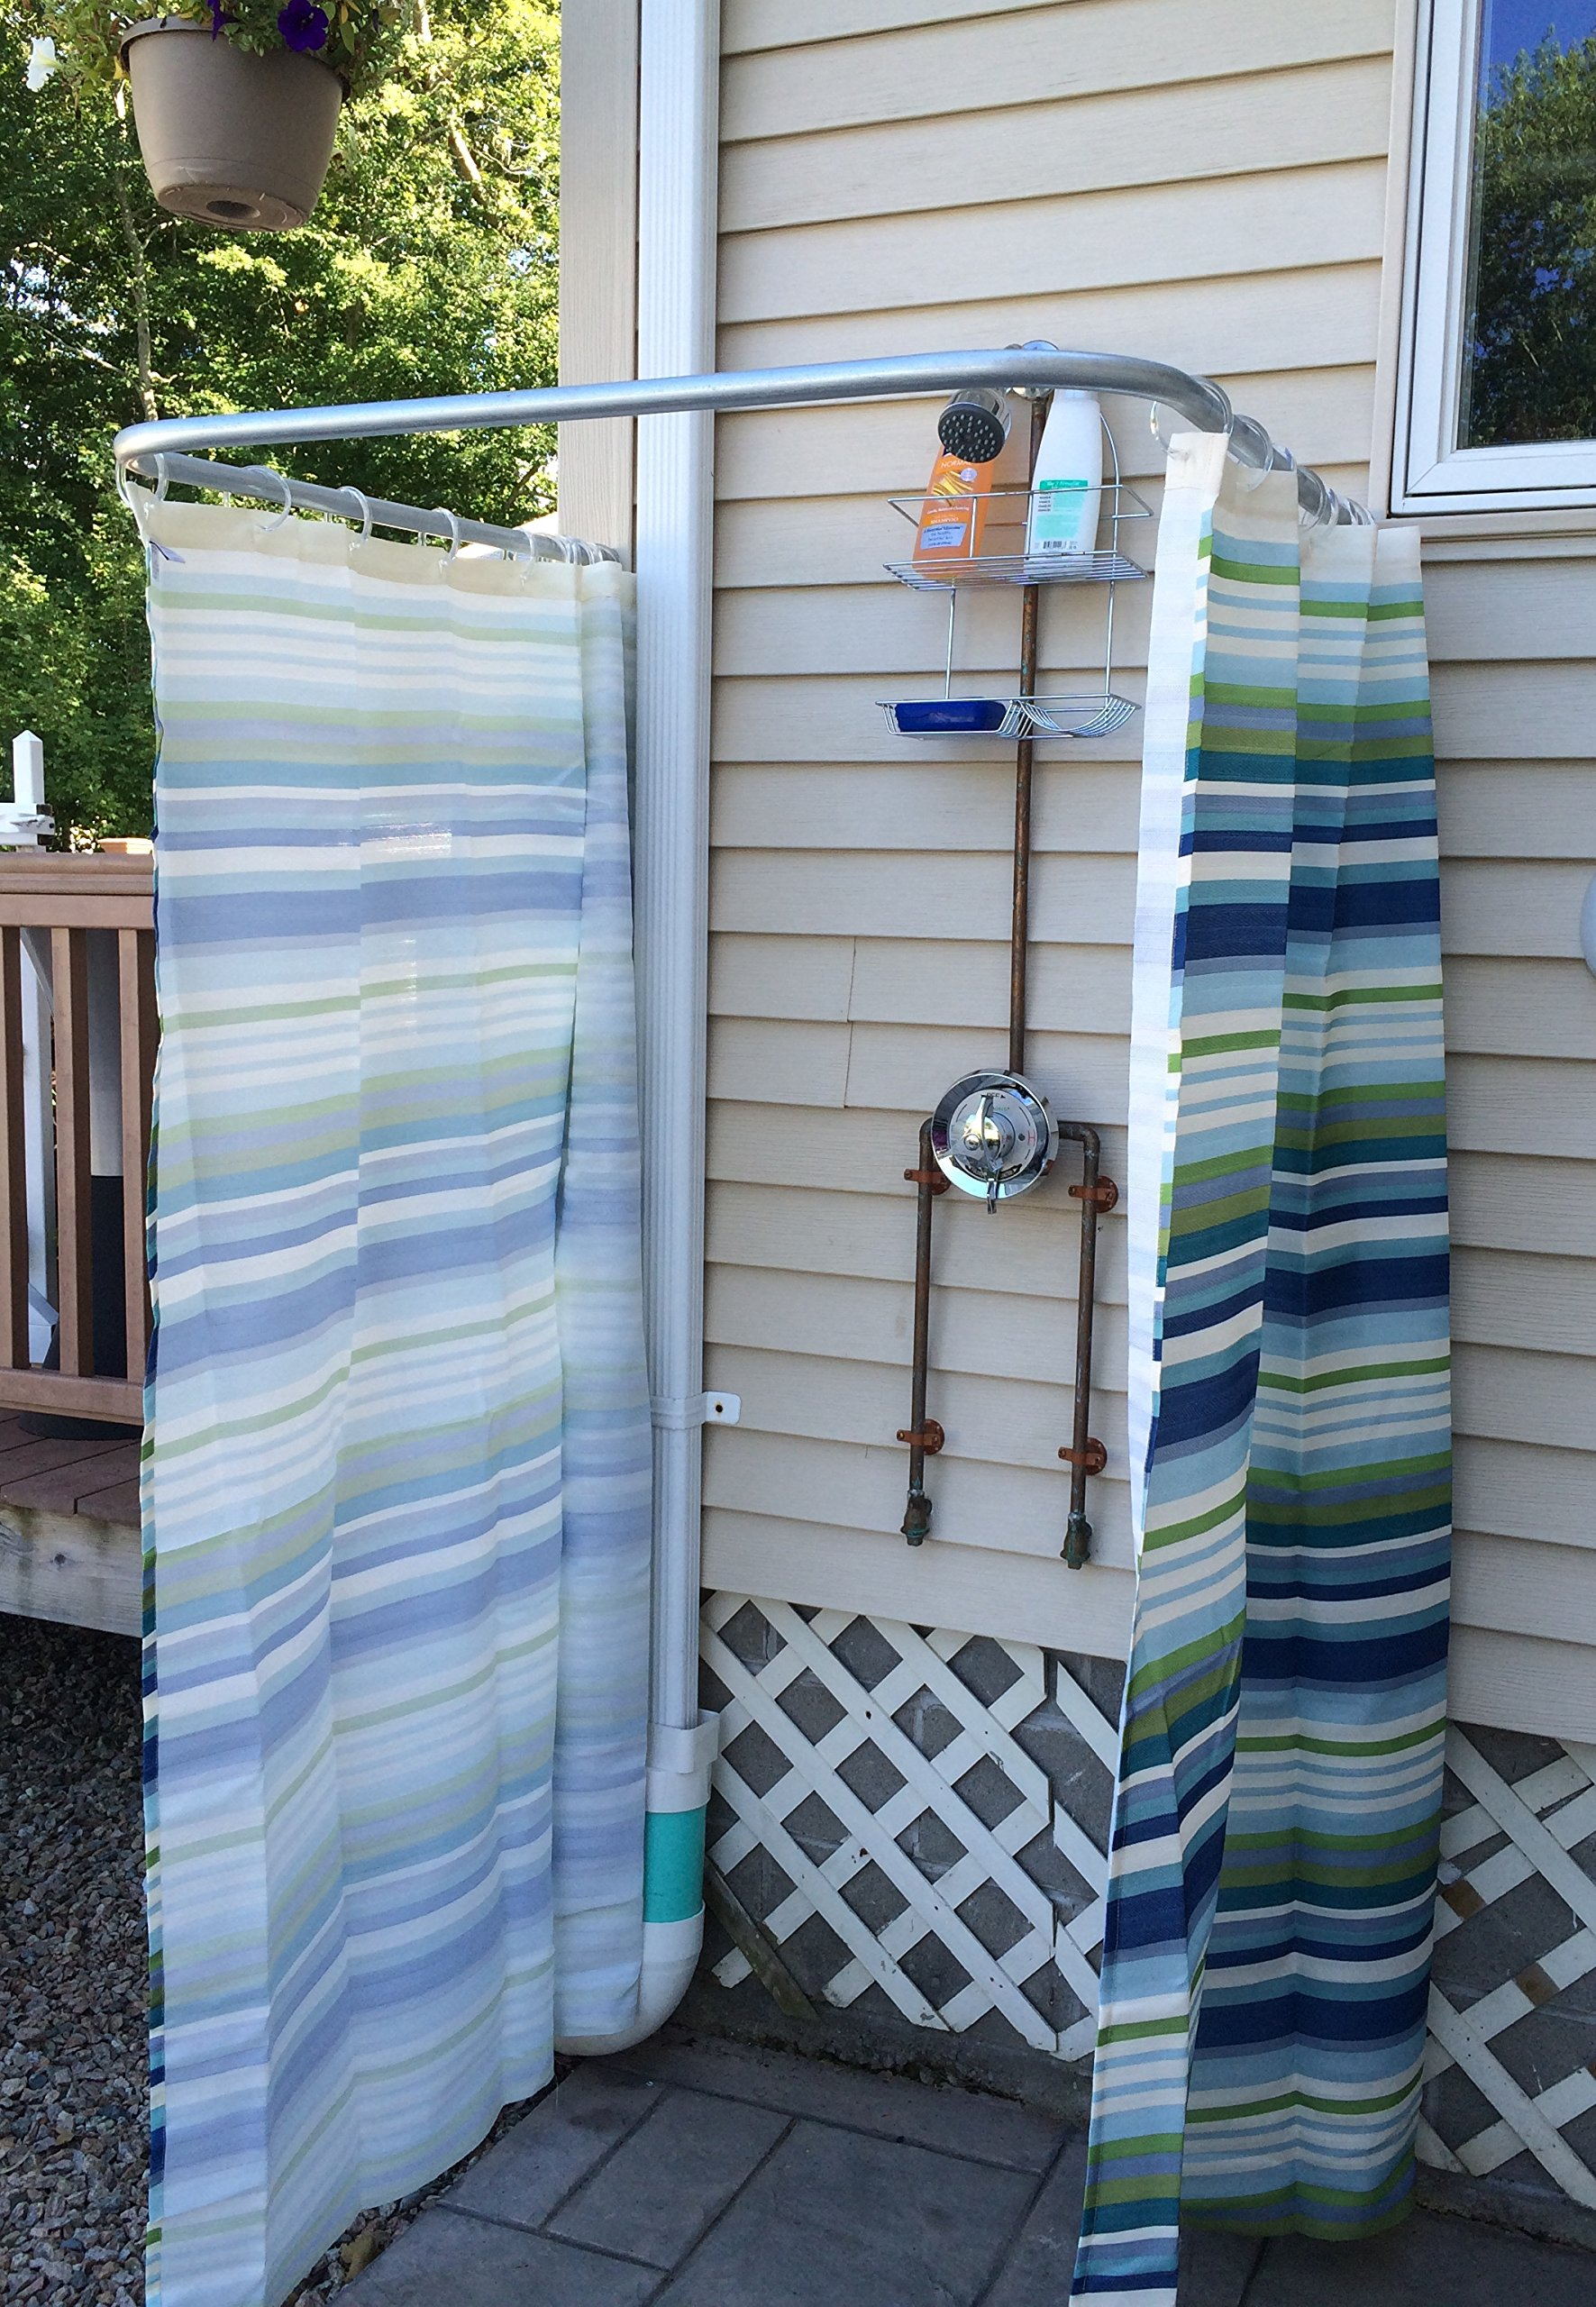 Aberdeen Parts Store 32'' Indoor Outdoor Removable Shower Curtain Rod - Heavy Duty by Aberdeen Parts Store (Image #3)